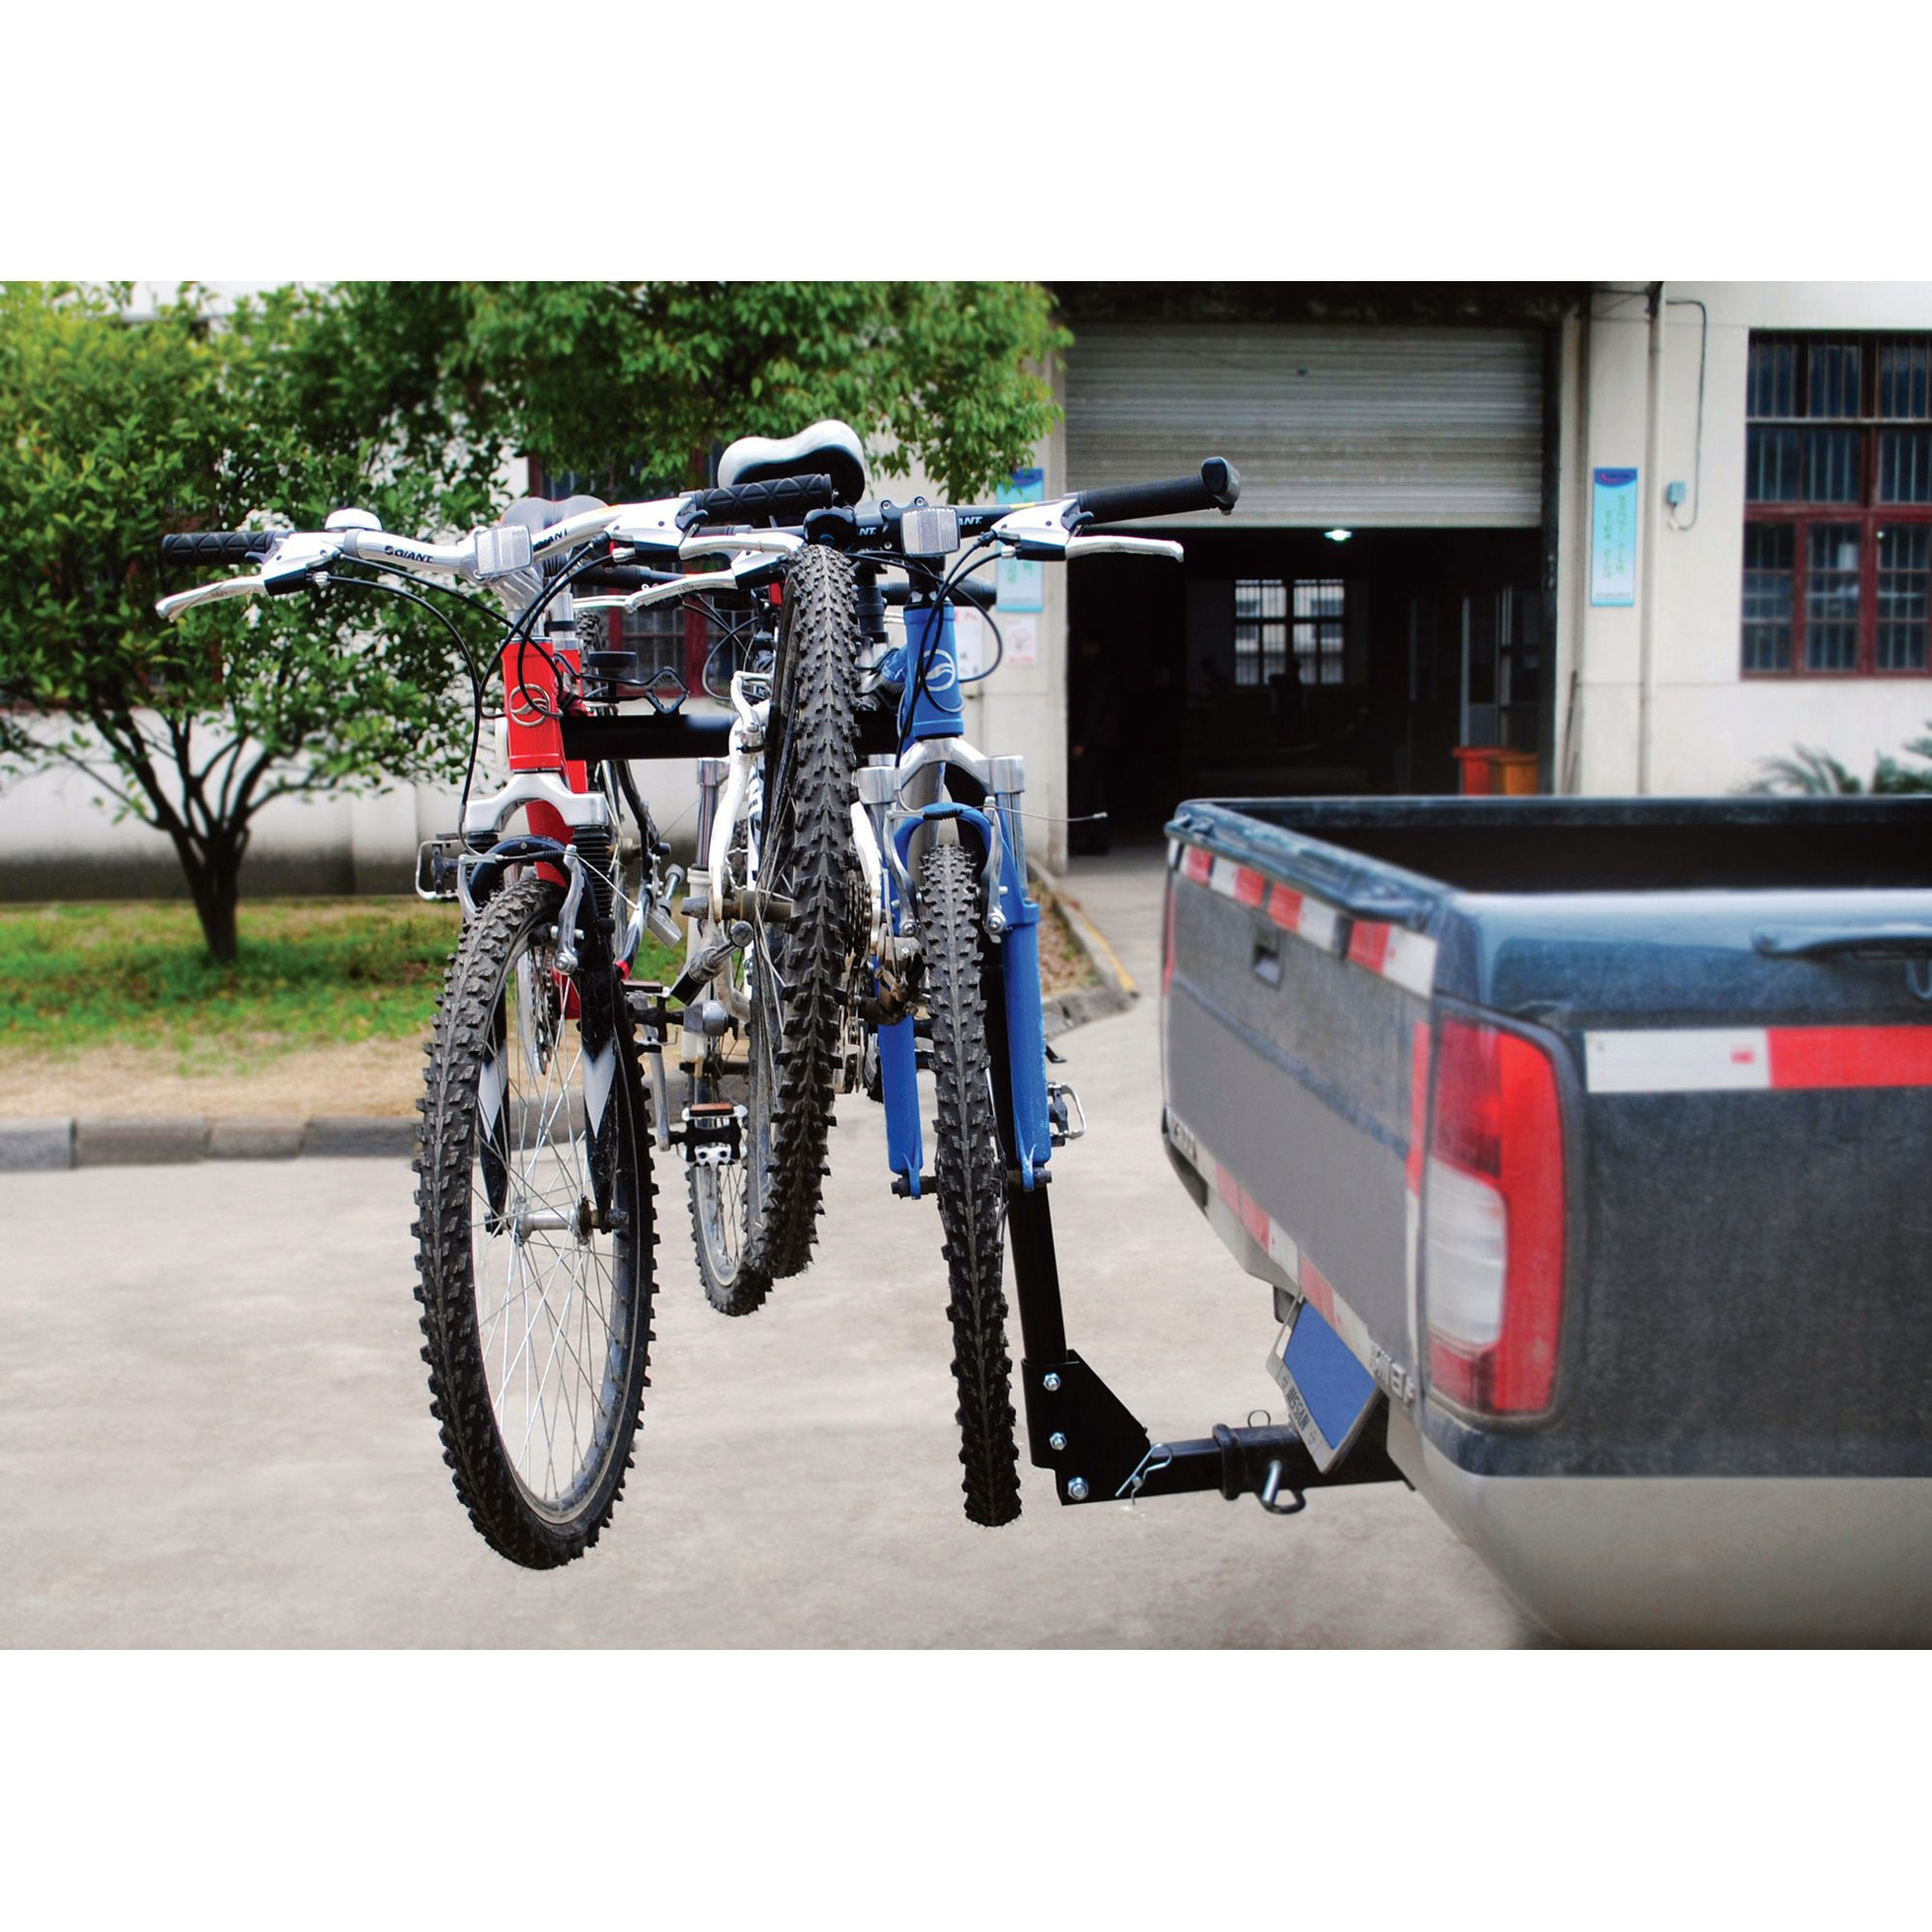 private own review my rack riding bicycle part in bike quik